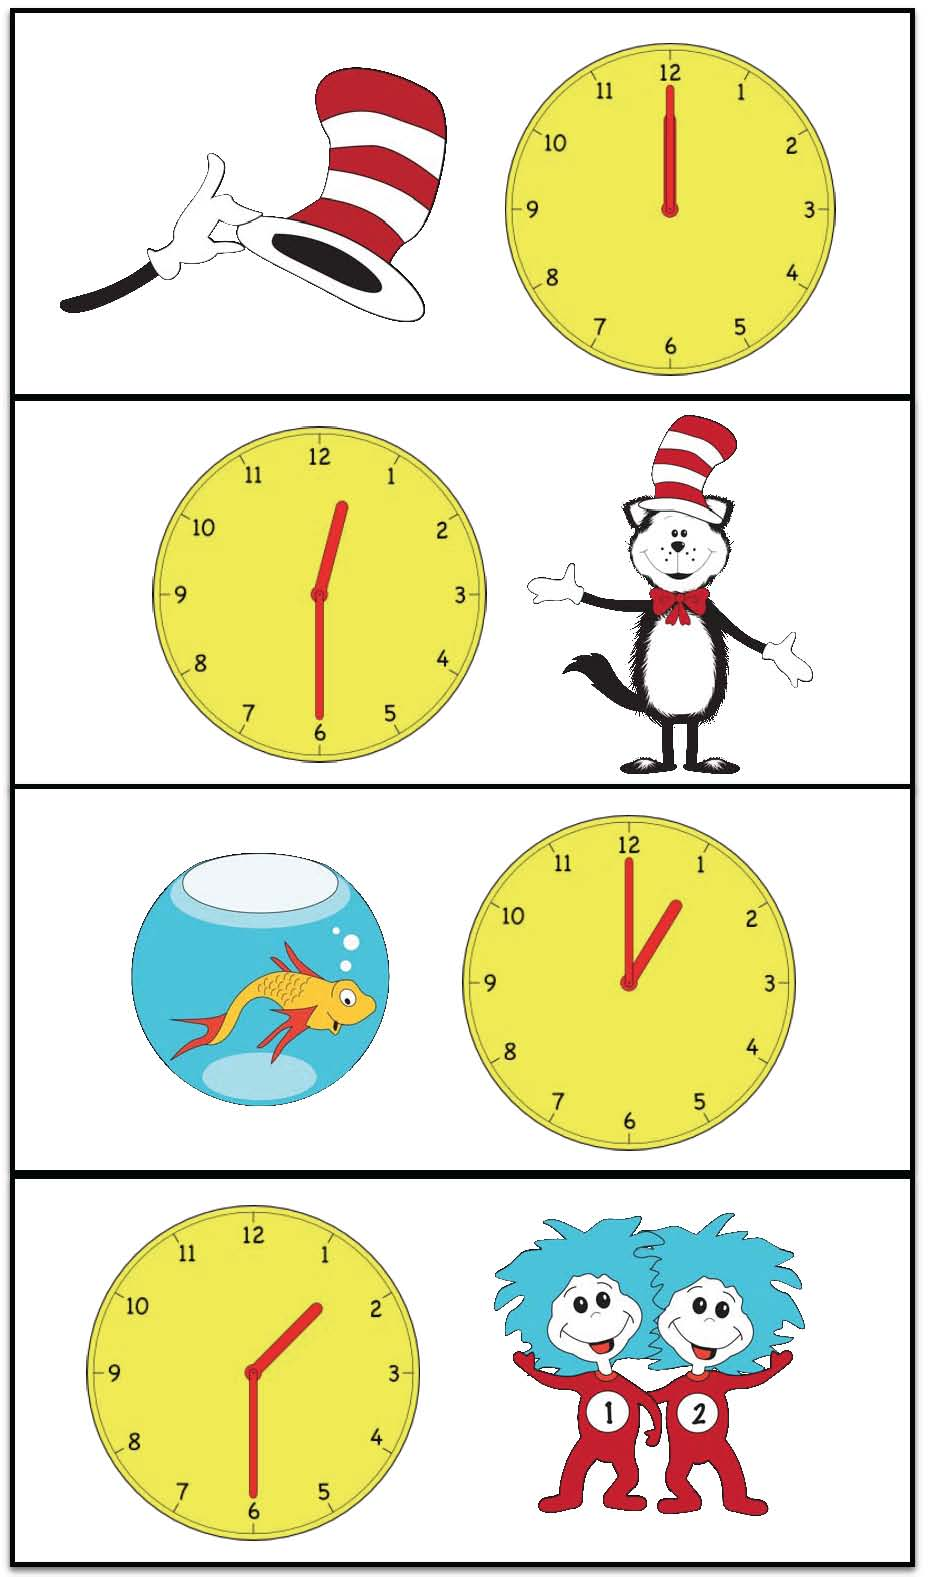 seuss activities, seuss games, telling time games, telling time activities, cat in the hat activities, cat in the hat games, common core seuss, analog time activities, analog time games, digital time games, digtital time activities, clock cards, clock posters, telling time pocket chart cards, telling time assessments, assessments for telling time to the hour, assessments for telling time to the half hour, telling time certificates, 1.MD.3